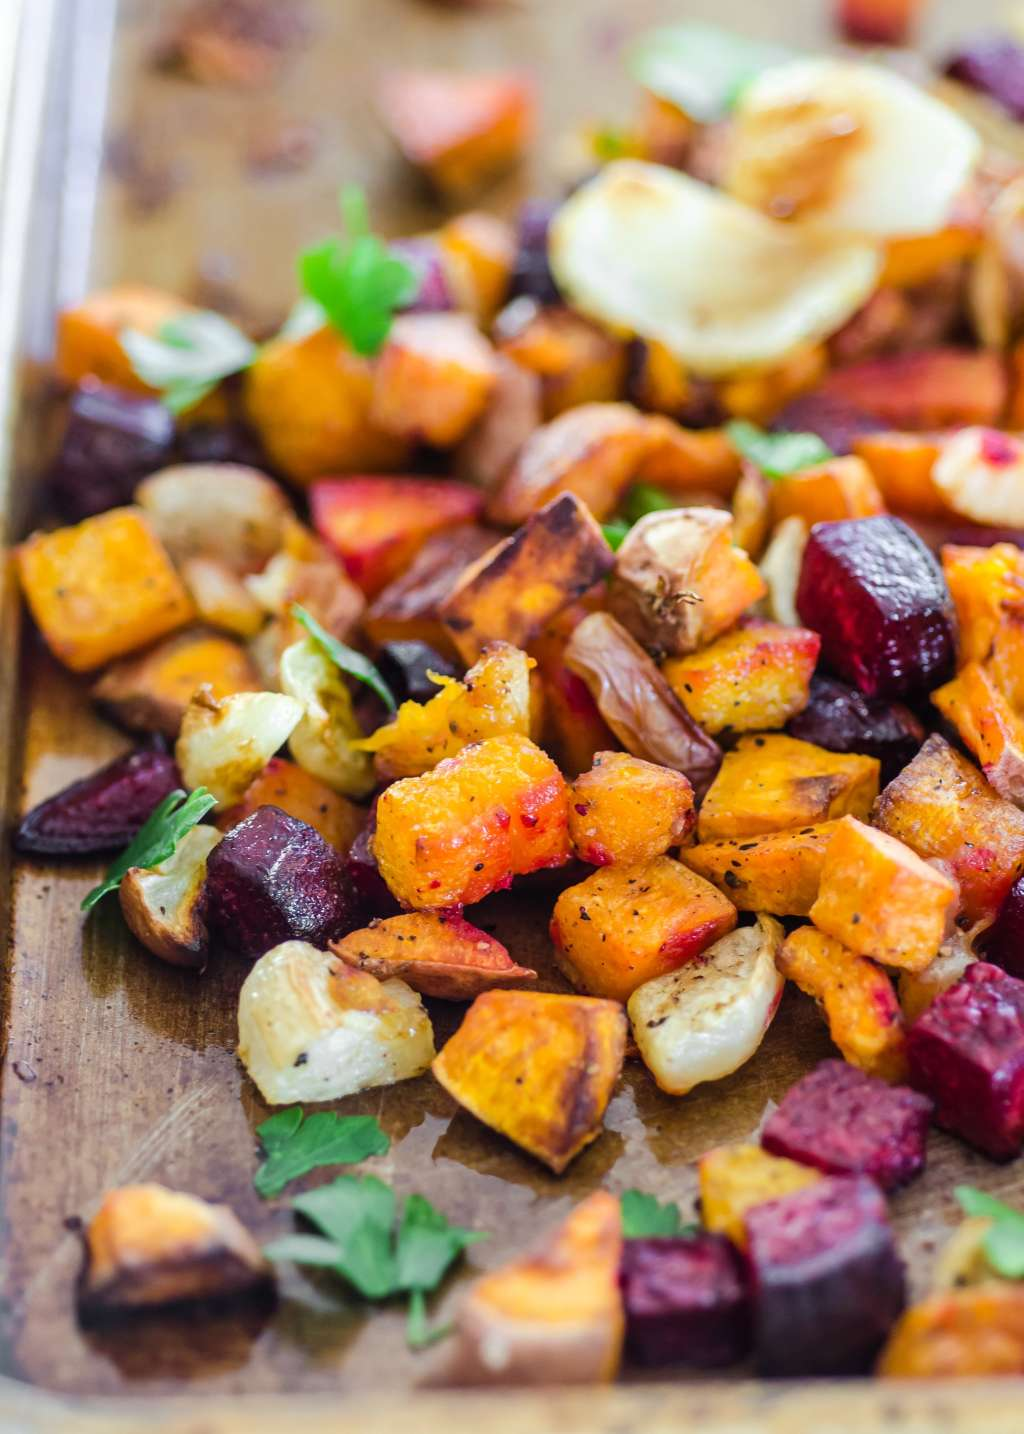 The Best Way to Roast Any Type of Vegetable